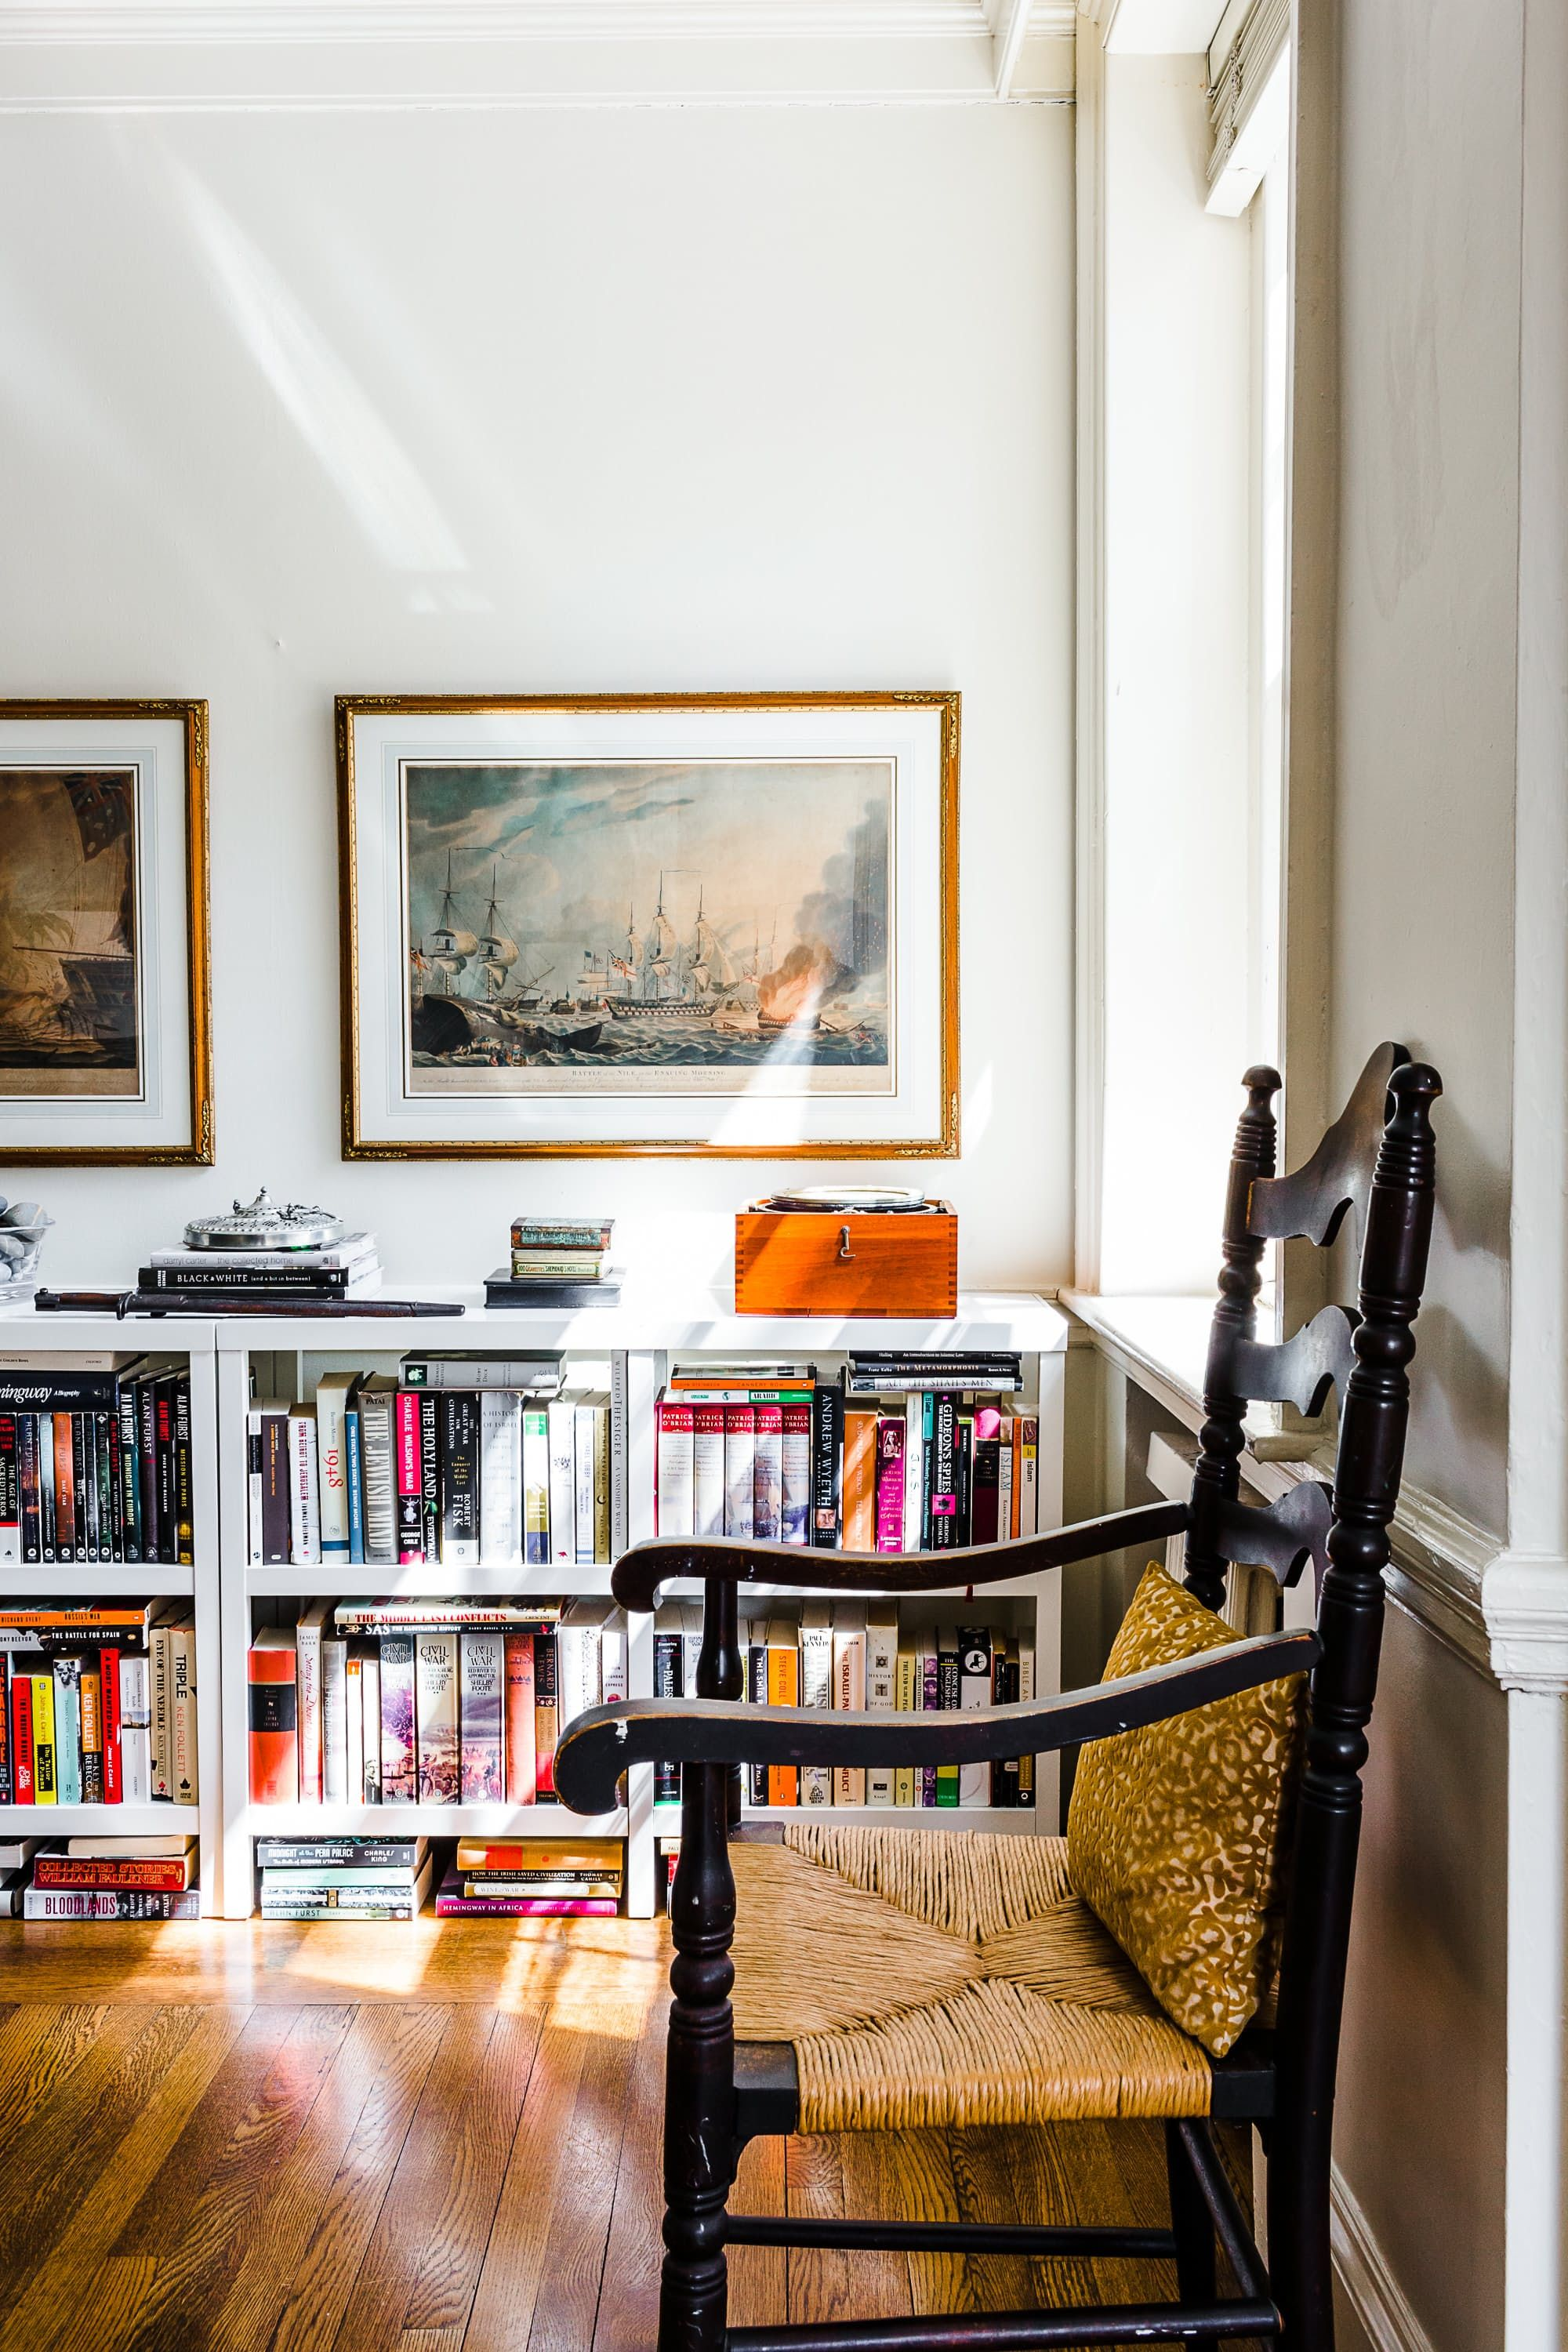 Bright Books Add A Pop Of Color To The Room